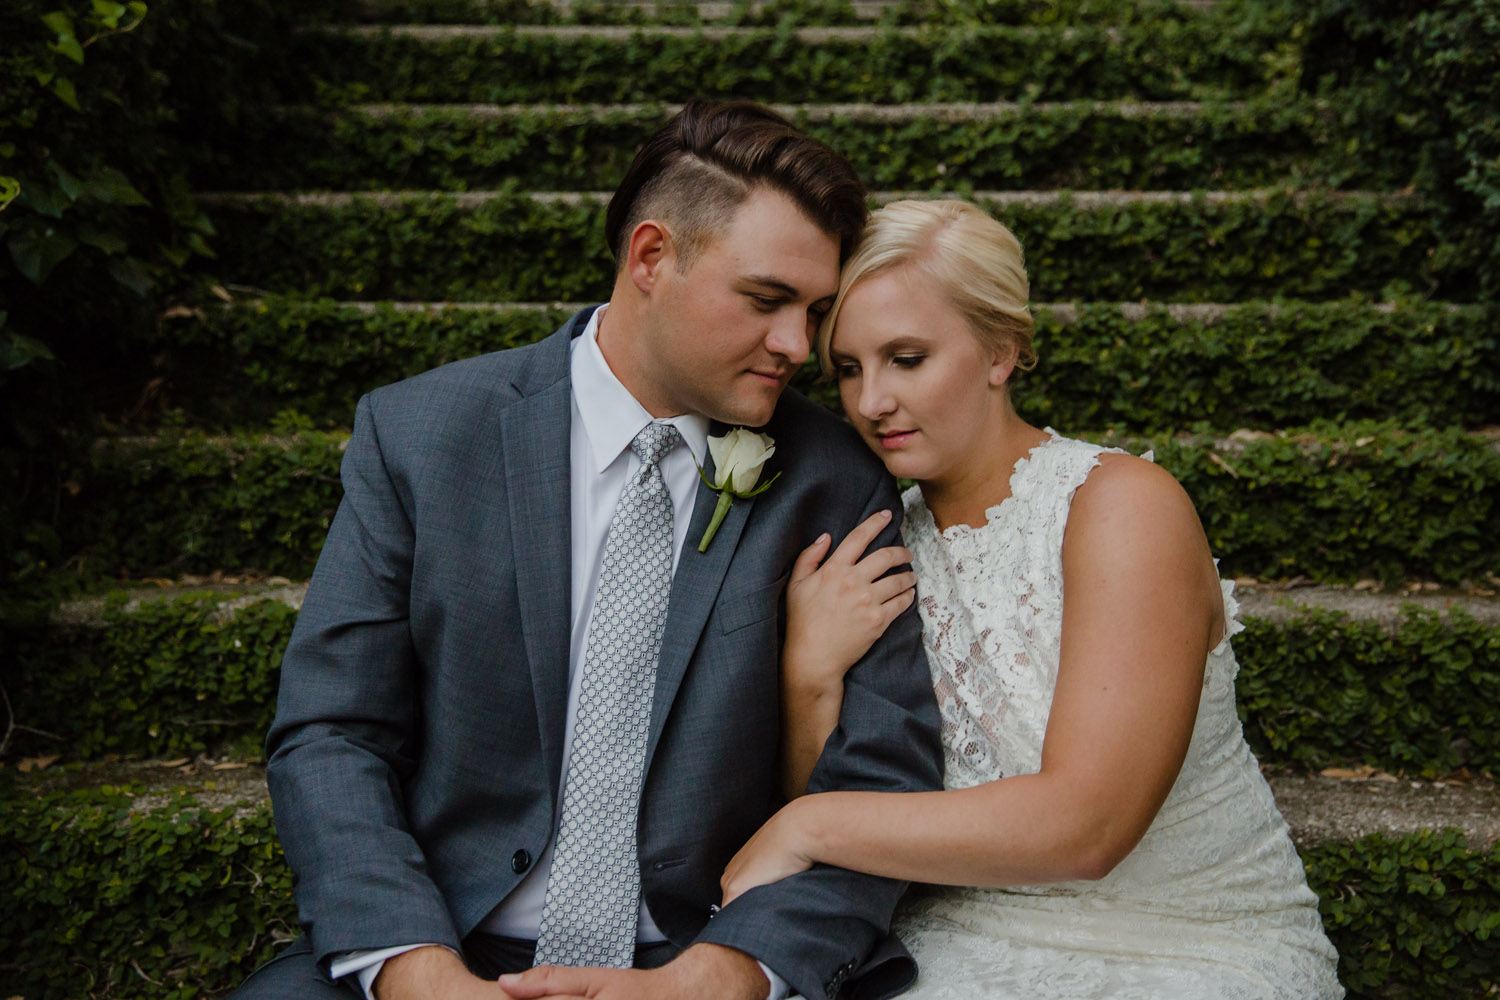 Atlanta Wedding Photographers Savannah Elopement Photographer Destination Photography_1051.jpg